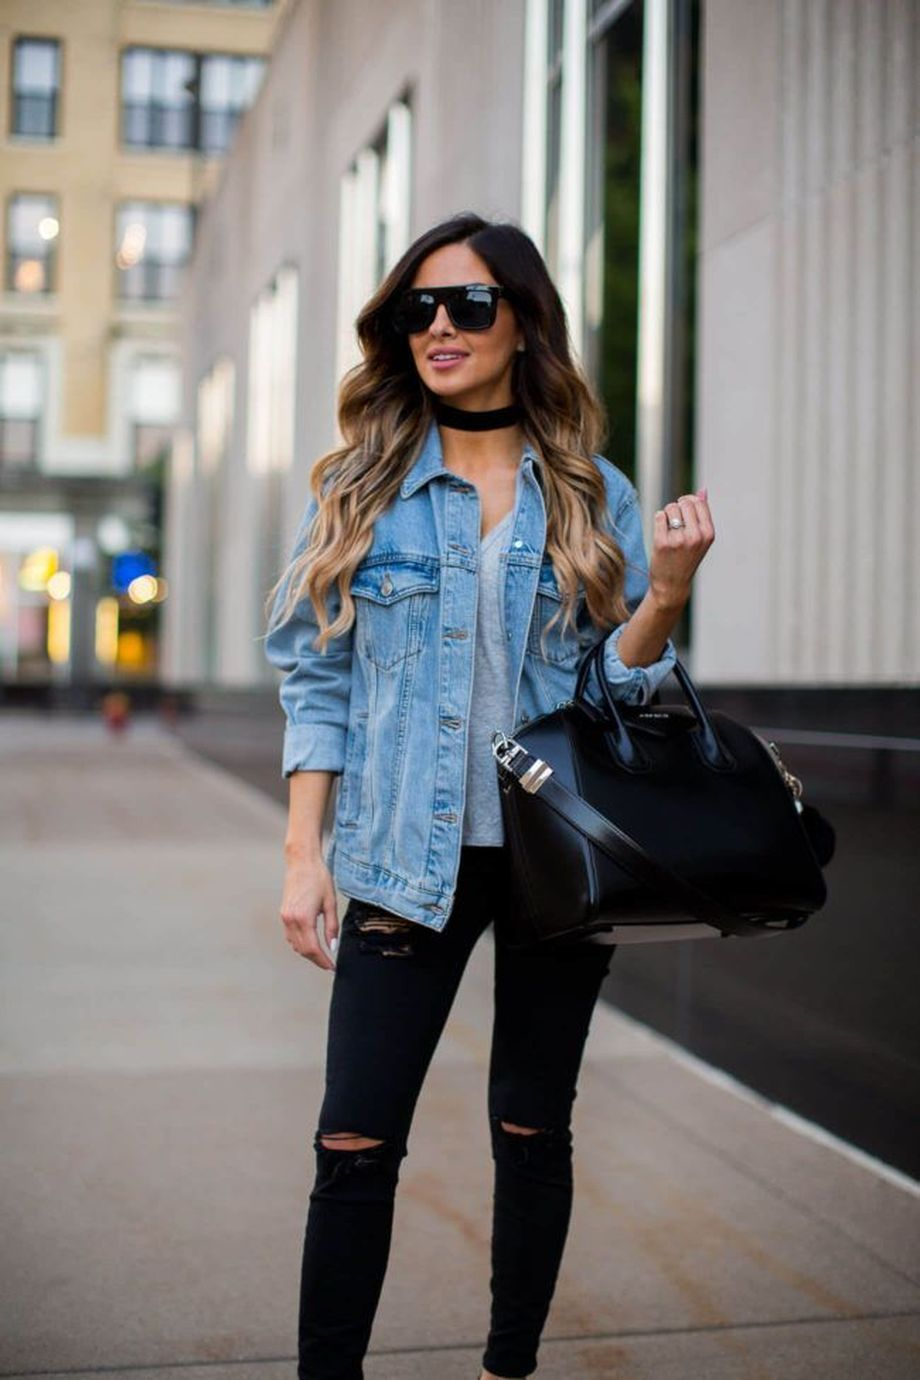 denim jacket outfits inspirations for girl 1  fashion best